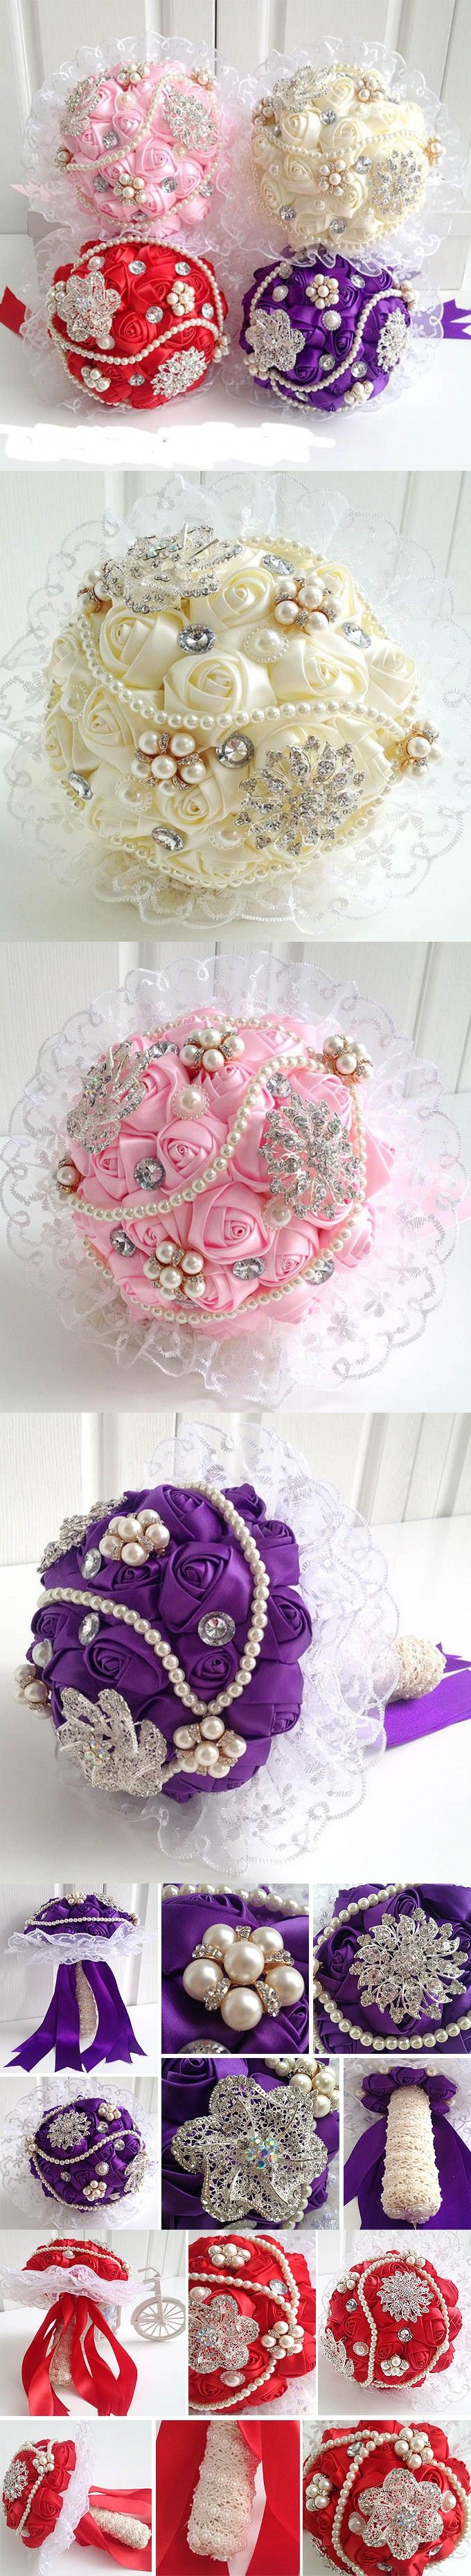 1940's style wedding bouquets   best букеты images on Pinterest  Bridal bouquets Wedding